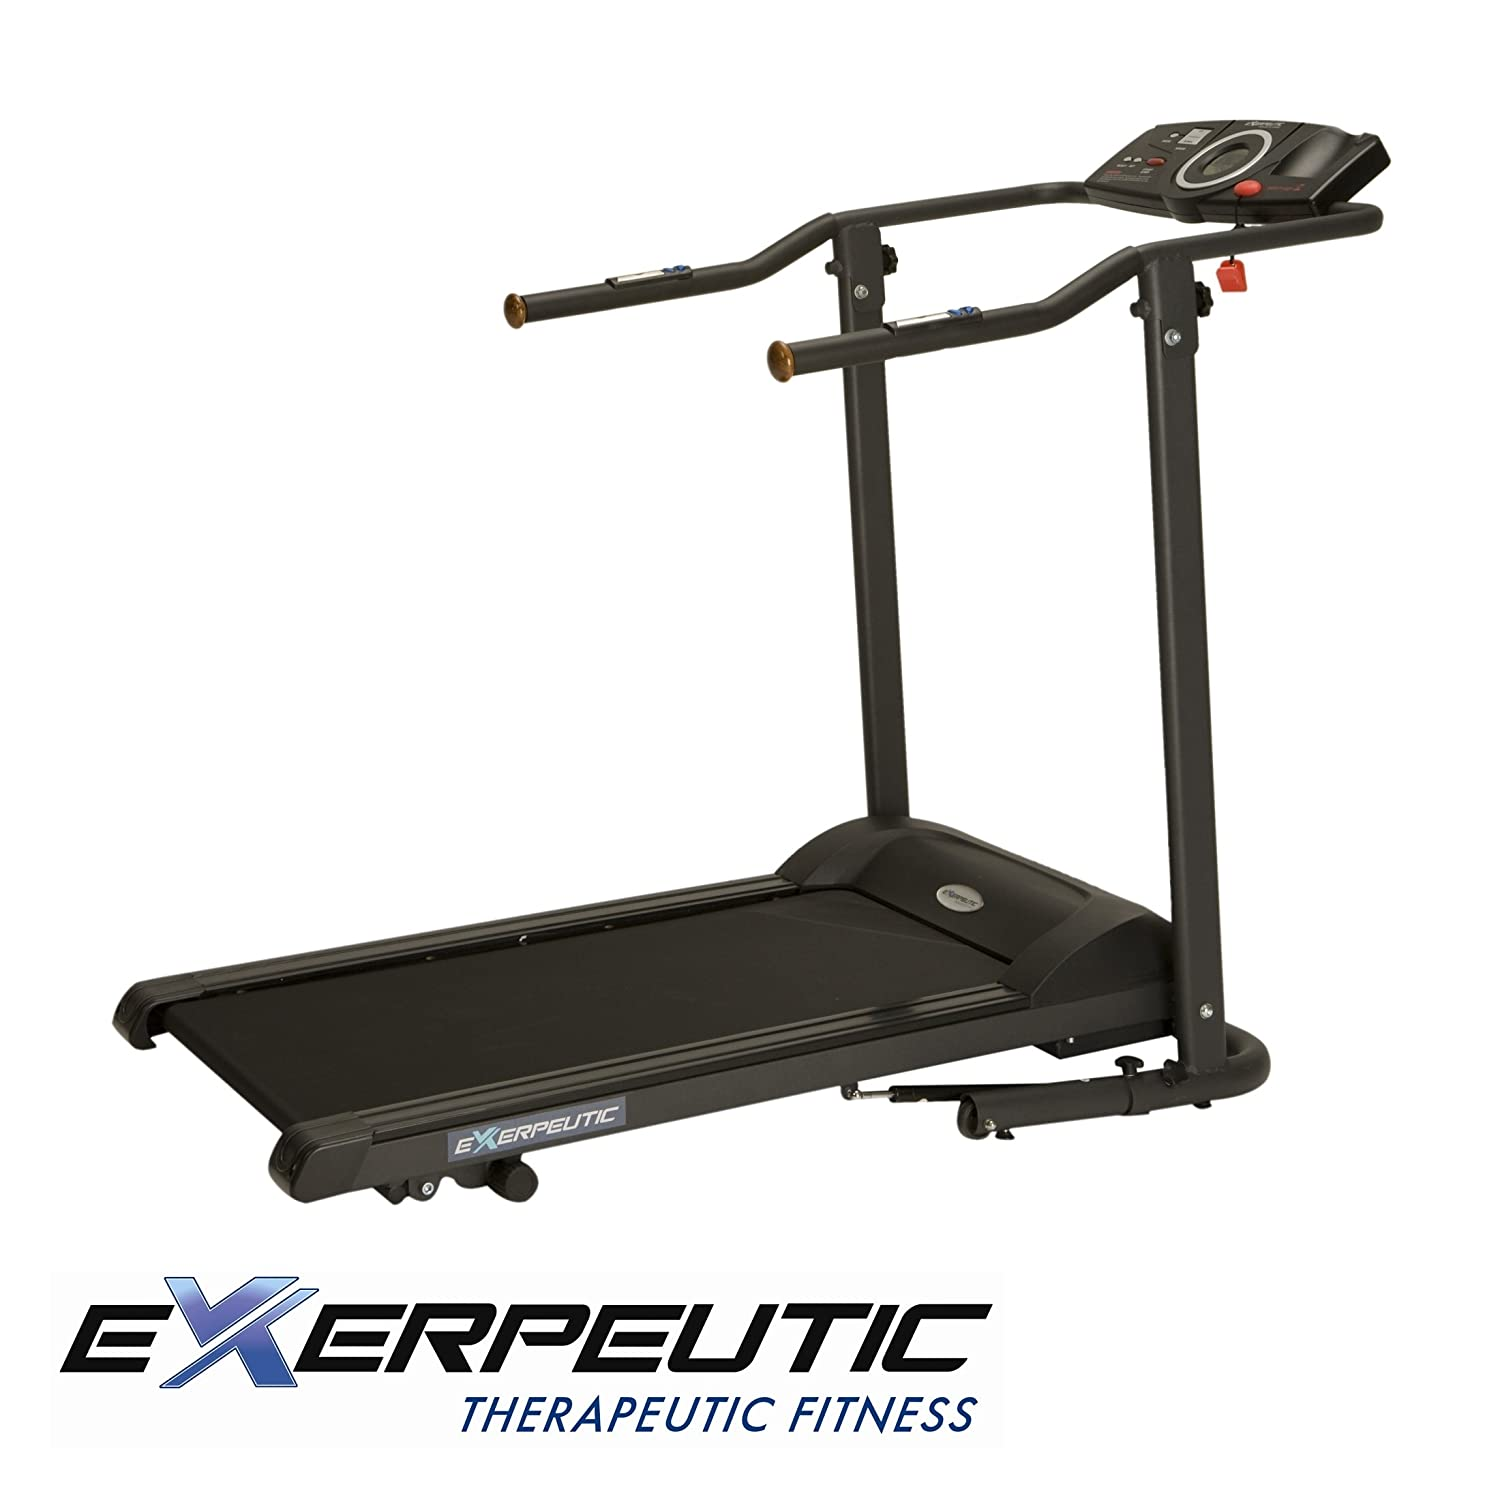 Exerpeutic TF1000 High Capacity Walk To Fitness Electric Treadmill